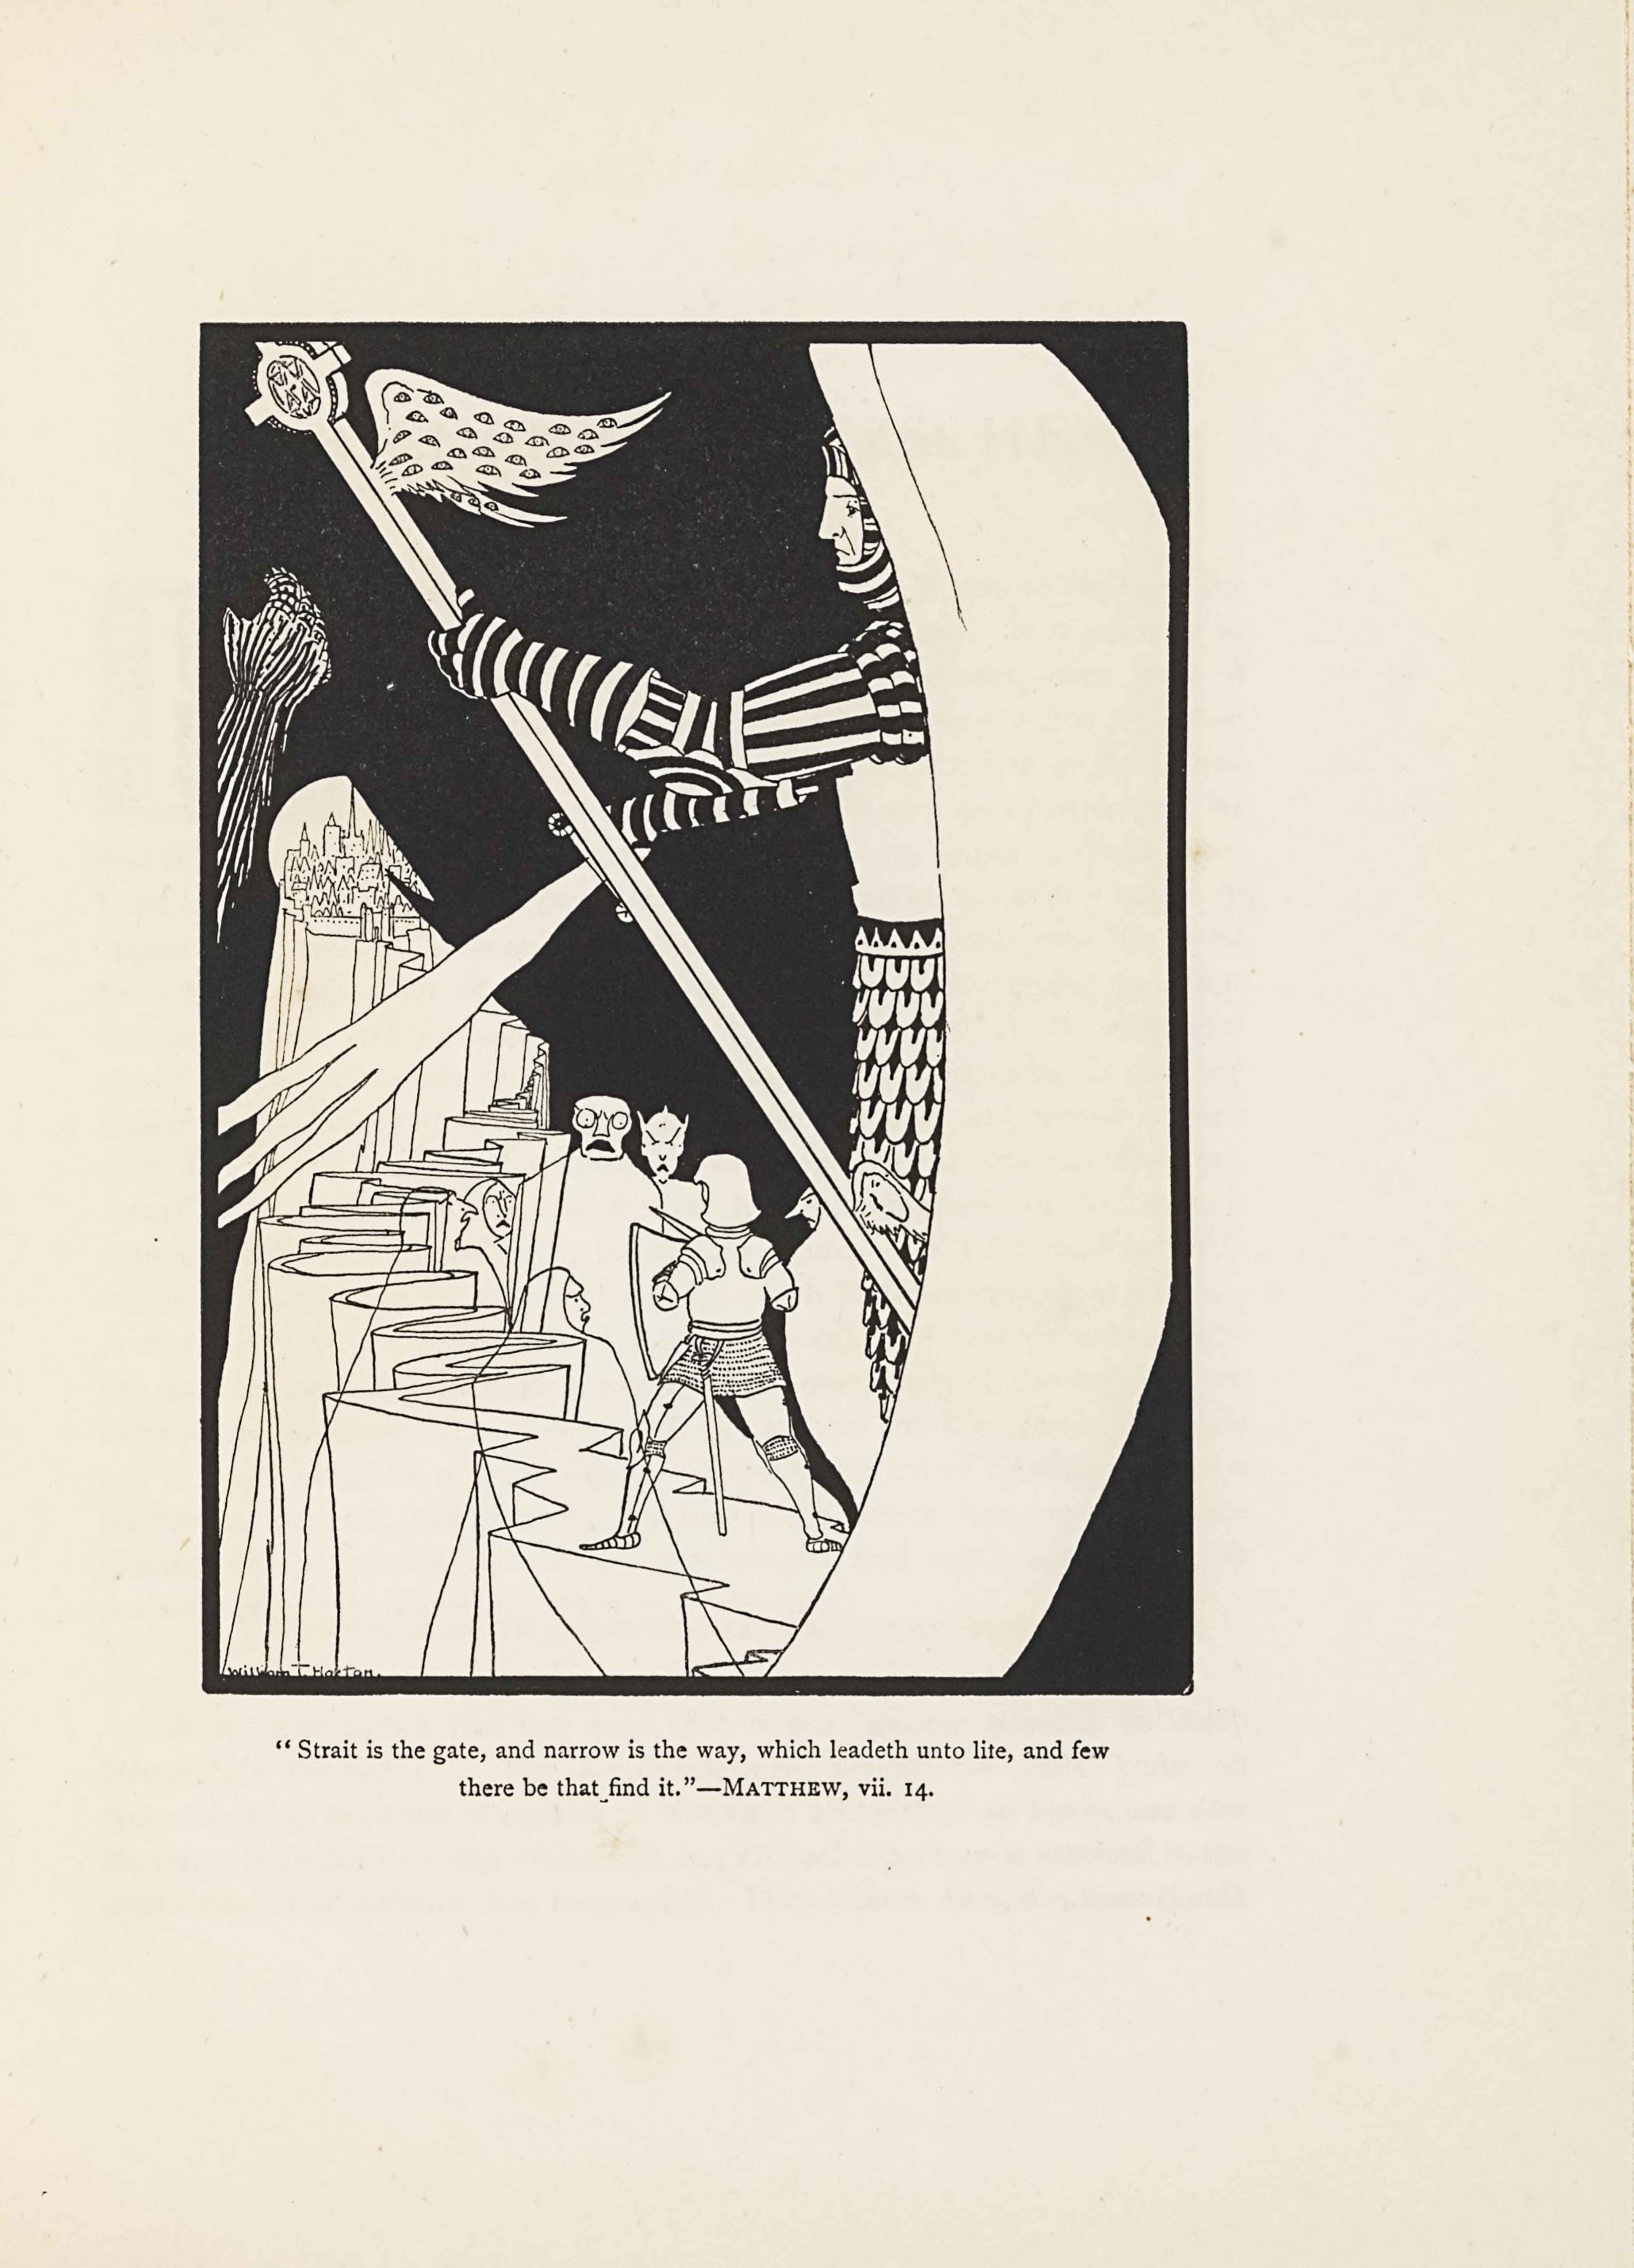 "The line block image is in portrait orientation. The image shows a fragmented scene of one knight facing off with creatures on a long and narrow path to a city that is surrounded by blackness. An oversized man taking up the whole height of the page appears in armour and floats in the air over the scene on the right side of the page. He faces to the left and is holding up a body-length polearm with a cross on the end and the Star of David in the middle of the cross. The polearm is in his left hand and is angled diagonally down to the right. The pole has two wings jutting out on the side closer to him, just below the cross and Star of David. Another smaller wing appears towards the bottom of the pole. The wings are angelic and feathered, and small eyes cover the surface of the two wings at the top of the pole. The knight's face and body are visible in profile, but a waxing, crescent moon shaped white shape covers him from the centreline of his body to the right. He is wearing armour that has a striped effect from the alternation of black and light metal strips. He wears a light chest plate and has faulds made of stacked upside down semi-circles lining his lower body. His head is covered with a striped helmet that envelopes the edges of his face. His face is comprised of a closed and straight mouth, and his eyes stare forward but slightly down on the scene below and before him. In his right hand, slightly lowered compared to his left, is a sword split into three blades. The sword is angled diagonally down to the left. The handle of the sword is covered by the pole in his other hand, but the guard is partially visible and decorated with a gem on each end. The sword blades layer over top of the scene below, and appears to be striking an unseen figure on the extreme left of the picture plane glimpsed only in the form a a mailed hand and forearm emerging diagonally up to the right. The gauntlet is made of streaks of light on the black background. The hand is partially curled inward. The Star of David is directly above the hand on the page, while the gauntletted hand appears directly above the city at the top of the path. In the centre of the foreground the long path begins. It appears to be a stone precipice, and has jagged edges that turn back and forth towards the vanishing point in the slightly left aligned mid-ground. On the closest part of the path in the foreground stands a small armoured knight stands in a wide stance with his back to the viewer.. A sword hangs from the back of his belt. He is holding a shield in his left hand and another sword is in his right hand, pointed forward to fend off the creatures that surround him. To the right of the knight is a bulbous creature facing the left side of the page in profile, which appears to have no extremities. The creature has a long, pointed nose that extends far off the face. The eyebrow visible is pointed down towards the centre of the face. On the far side of the knight is a partially visible grotesque creature that has a long angular face with elf ears and eyes with eyebrows that point down towards the centre of the face. To the left is another grotesque creature, with an invisible body, showing the path in the distance through his torso. The head is block shaped and larger at the top. He has bulging wide eyes, a downturned and open mouth, and a large block-like nose. To the left of him is another grotesque creature visible only by their head and neck, turned to face the knight and wearing a robe that tightens around the face, showing only a furrowed brow, long pointed nose, and downturned open mouth. On the left of the path are three ghostly creatures, shown in outline overlay, with the scene visible through them, their backs to the viewer and their faces turned toward the knight and the grotesque creatures. All the creatures are wearing robes and no arms or legs are visible. The winding upward path leads to a city shown in skyline view in the distance, appearing about halfway up the left side of the page. Around the path is stark blackness, which comprises the rest of the background. The artist's signature appears in the bottom left corner of the page, in a horizontal line aligned with the left edge resting on top of the border. The text is: ""William T. Horton."" Beneath the frame is the biblical caption: ""Strait is the gate, and narrow is the way, which leadeth unto lite, and few there be that find it.""—MATTHEW, vii.14."